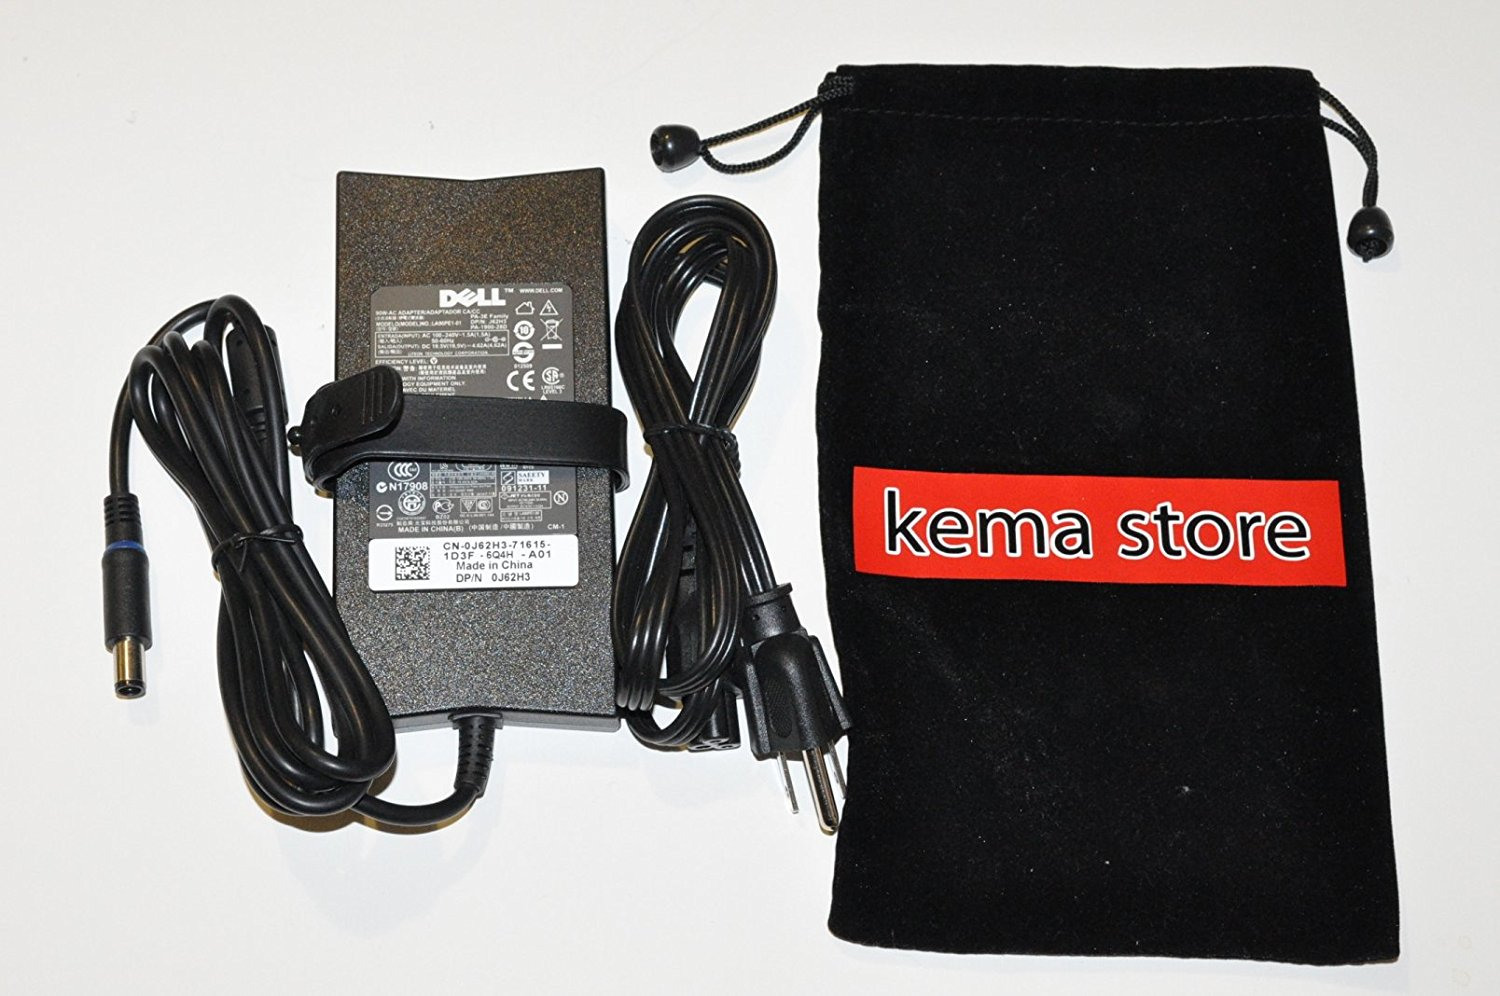 Bundle - 3 items: Adapter, Power Cord and KEMA ADAPTER BAG POUCH. Genuine Dell 90W 19.5V 4.62A New Slim AC Adapter For Dell Model Numbers: Dell Inspiron 700M, Dell Inspiron 710M, Dell Inspiron 7420, Dell Inspiron 7500, Dell Inspiron 7520, Dell Inspiron 7720, Dell Inspiron 8500, Dell Inspiron 8600,